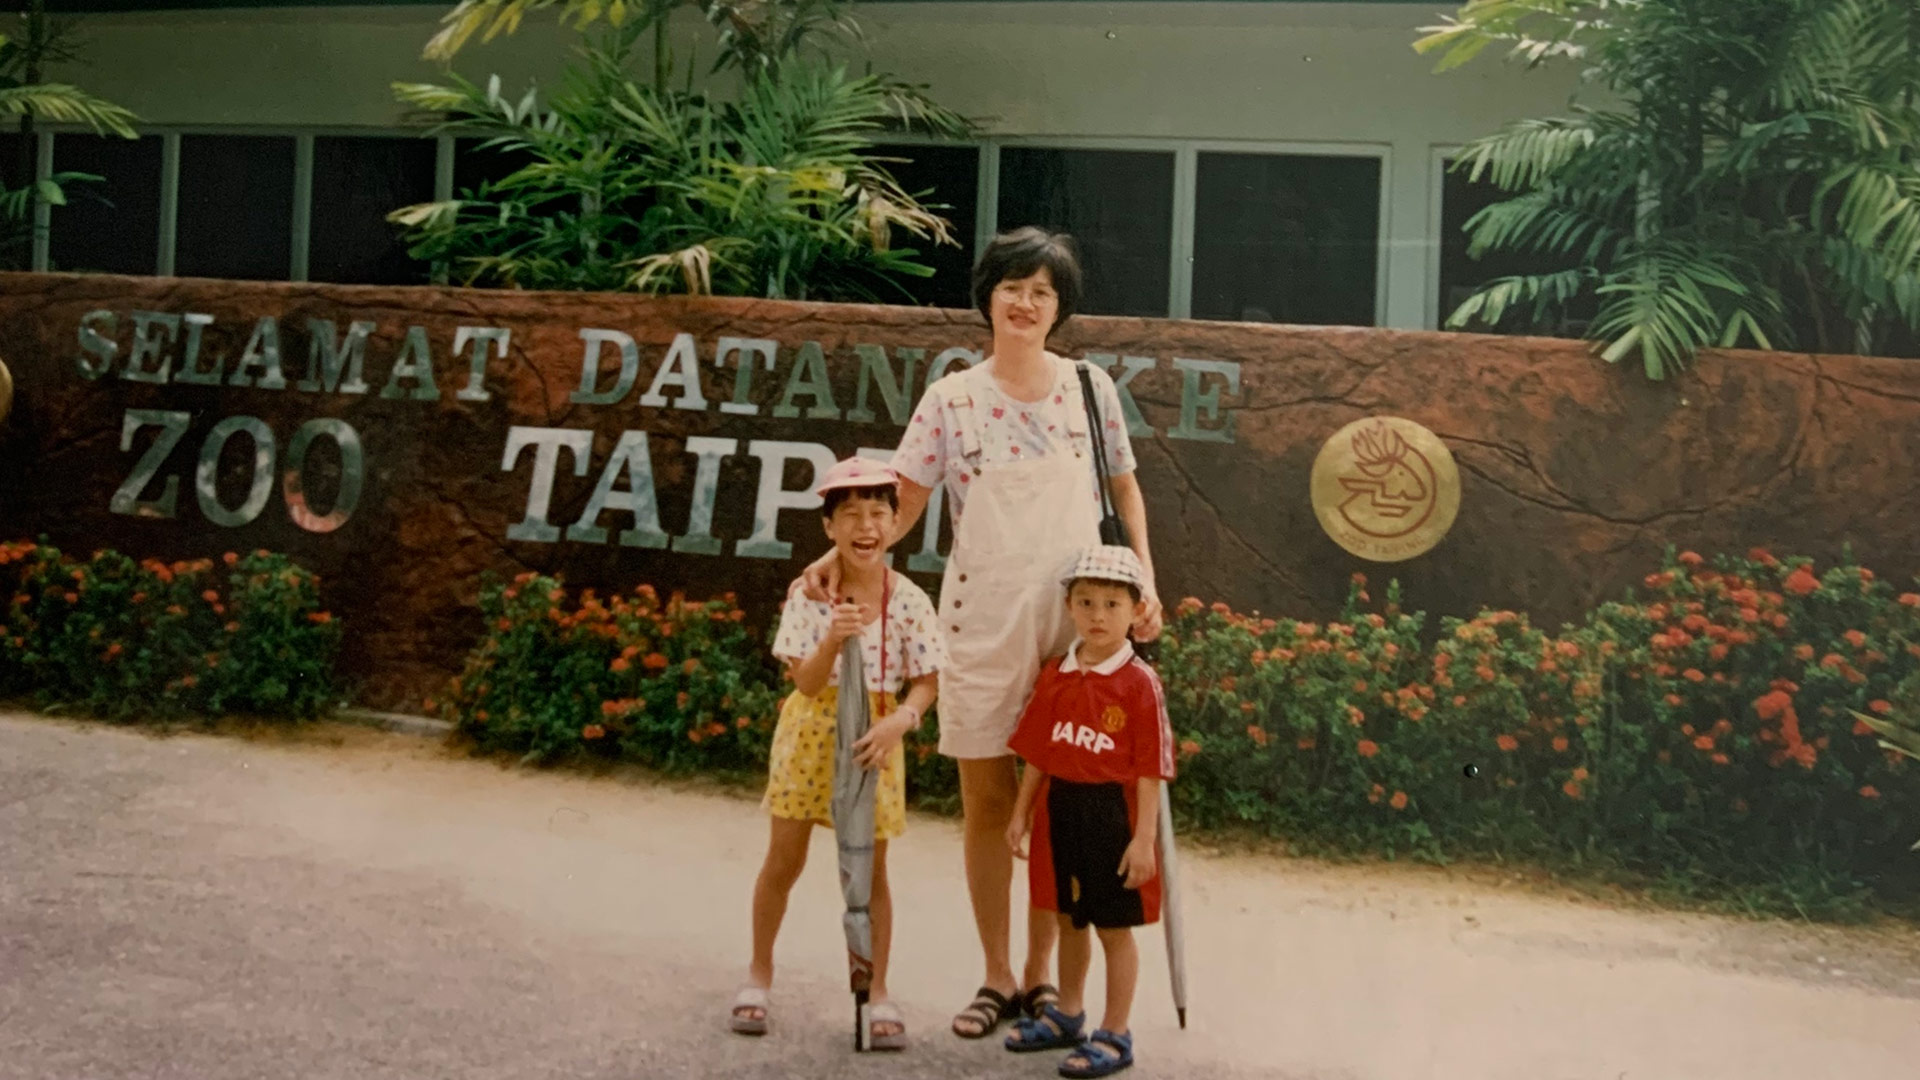 Jocelyn Yow with her family on a trip to Taiping Zoo in Malaysia. | Courtesy of Jocelyn Yow